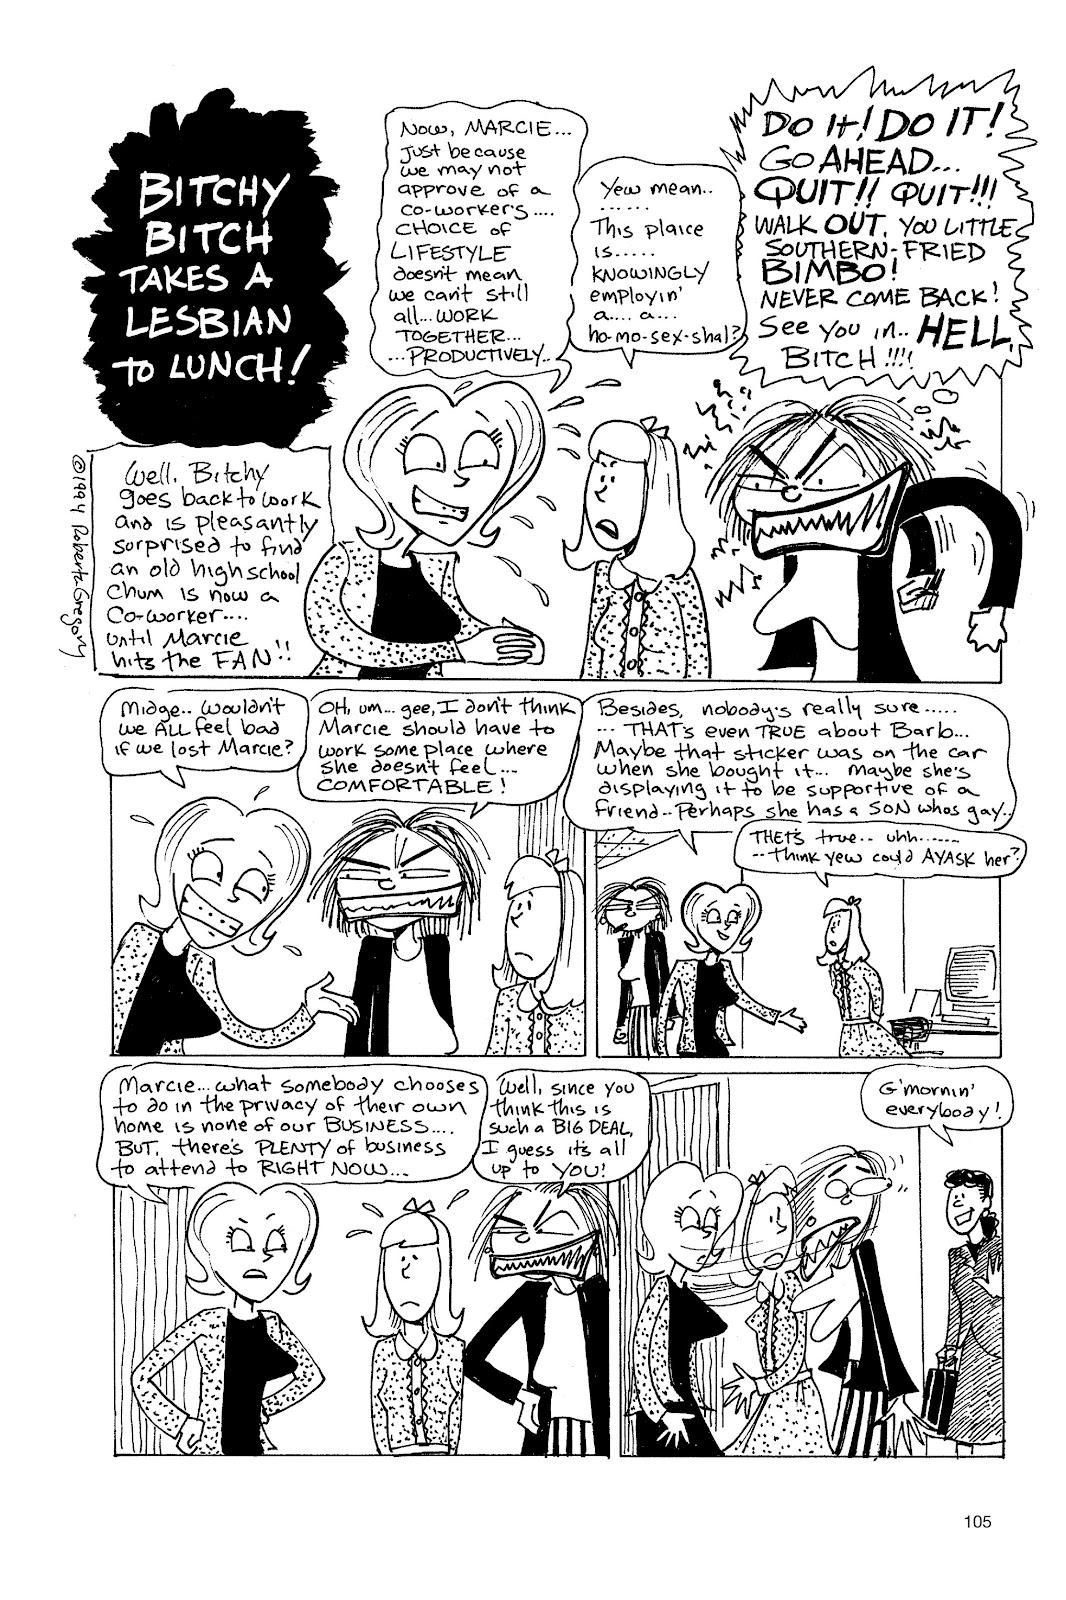 Read online Life's a Bitch: The Complete Bitchy Bitch Stories comic -  Issue # TPB (Part 2) - 3